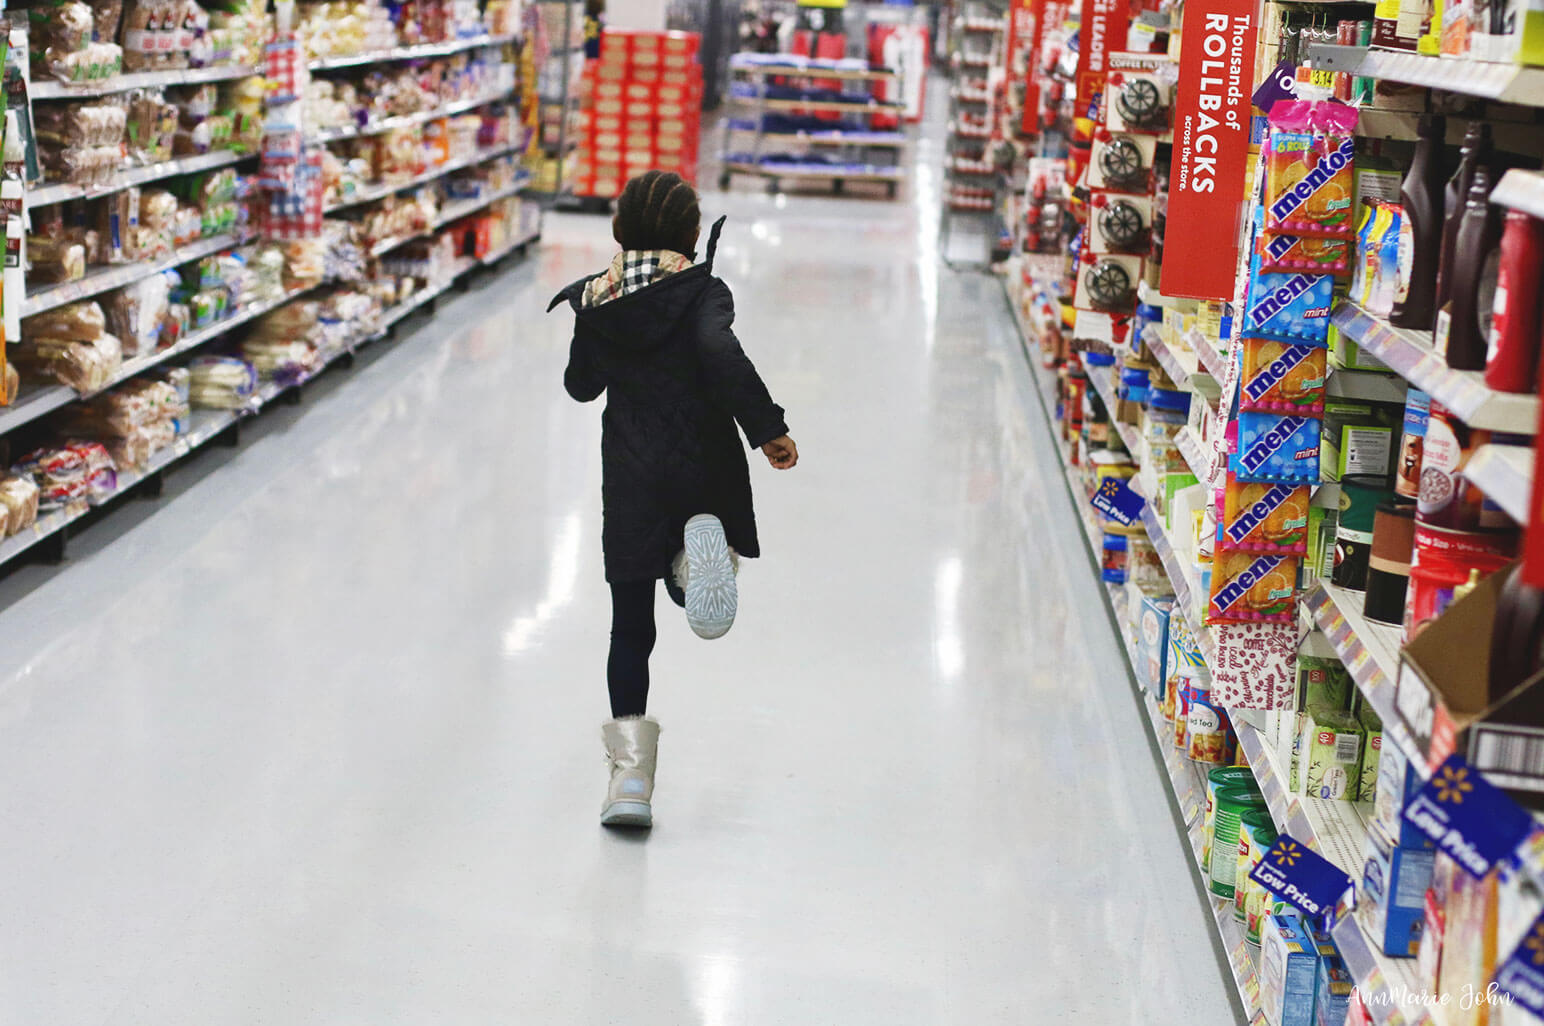 Child running through grocery store